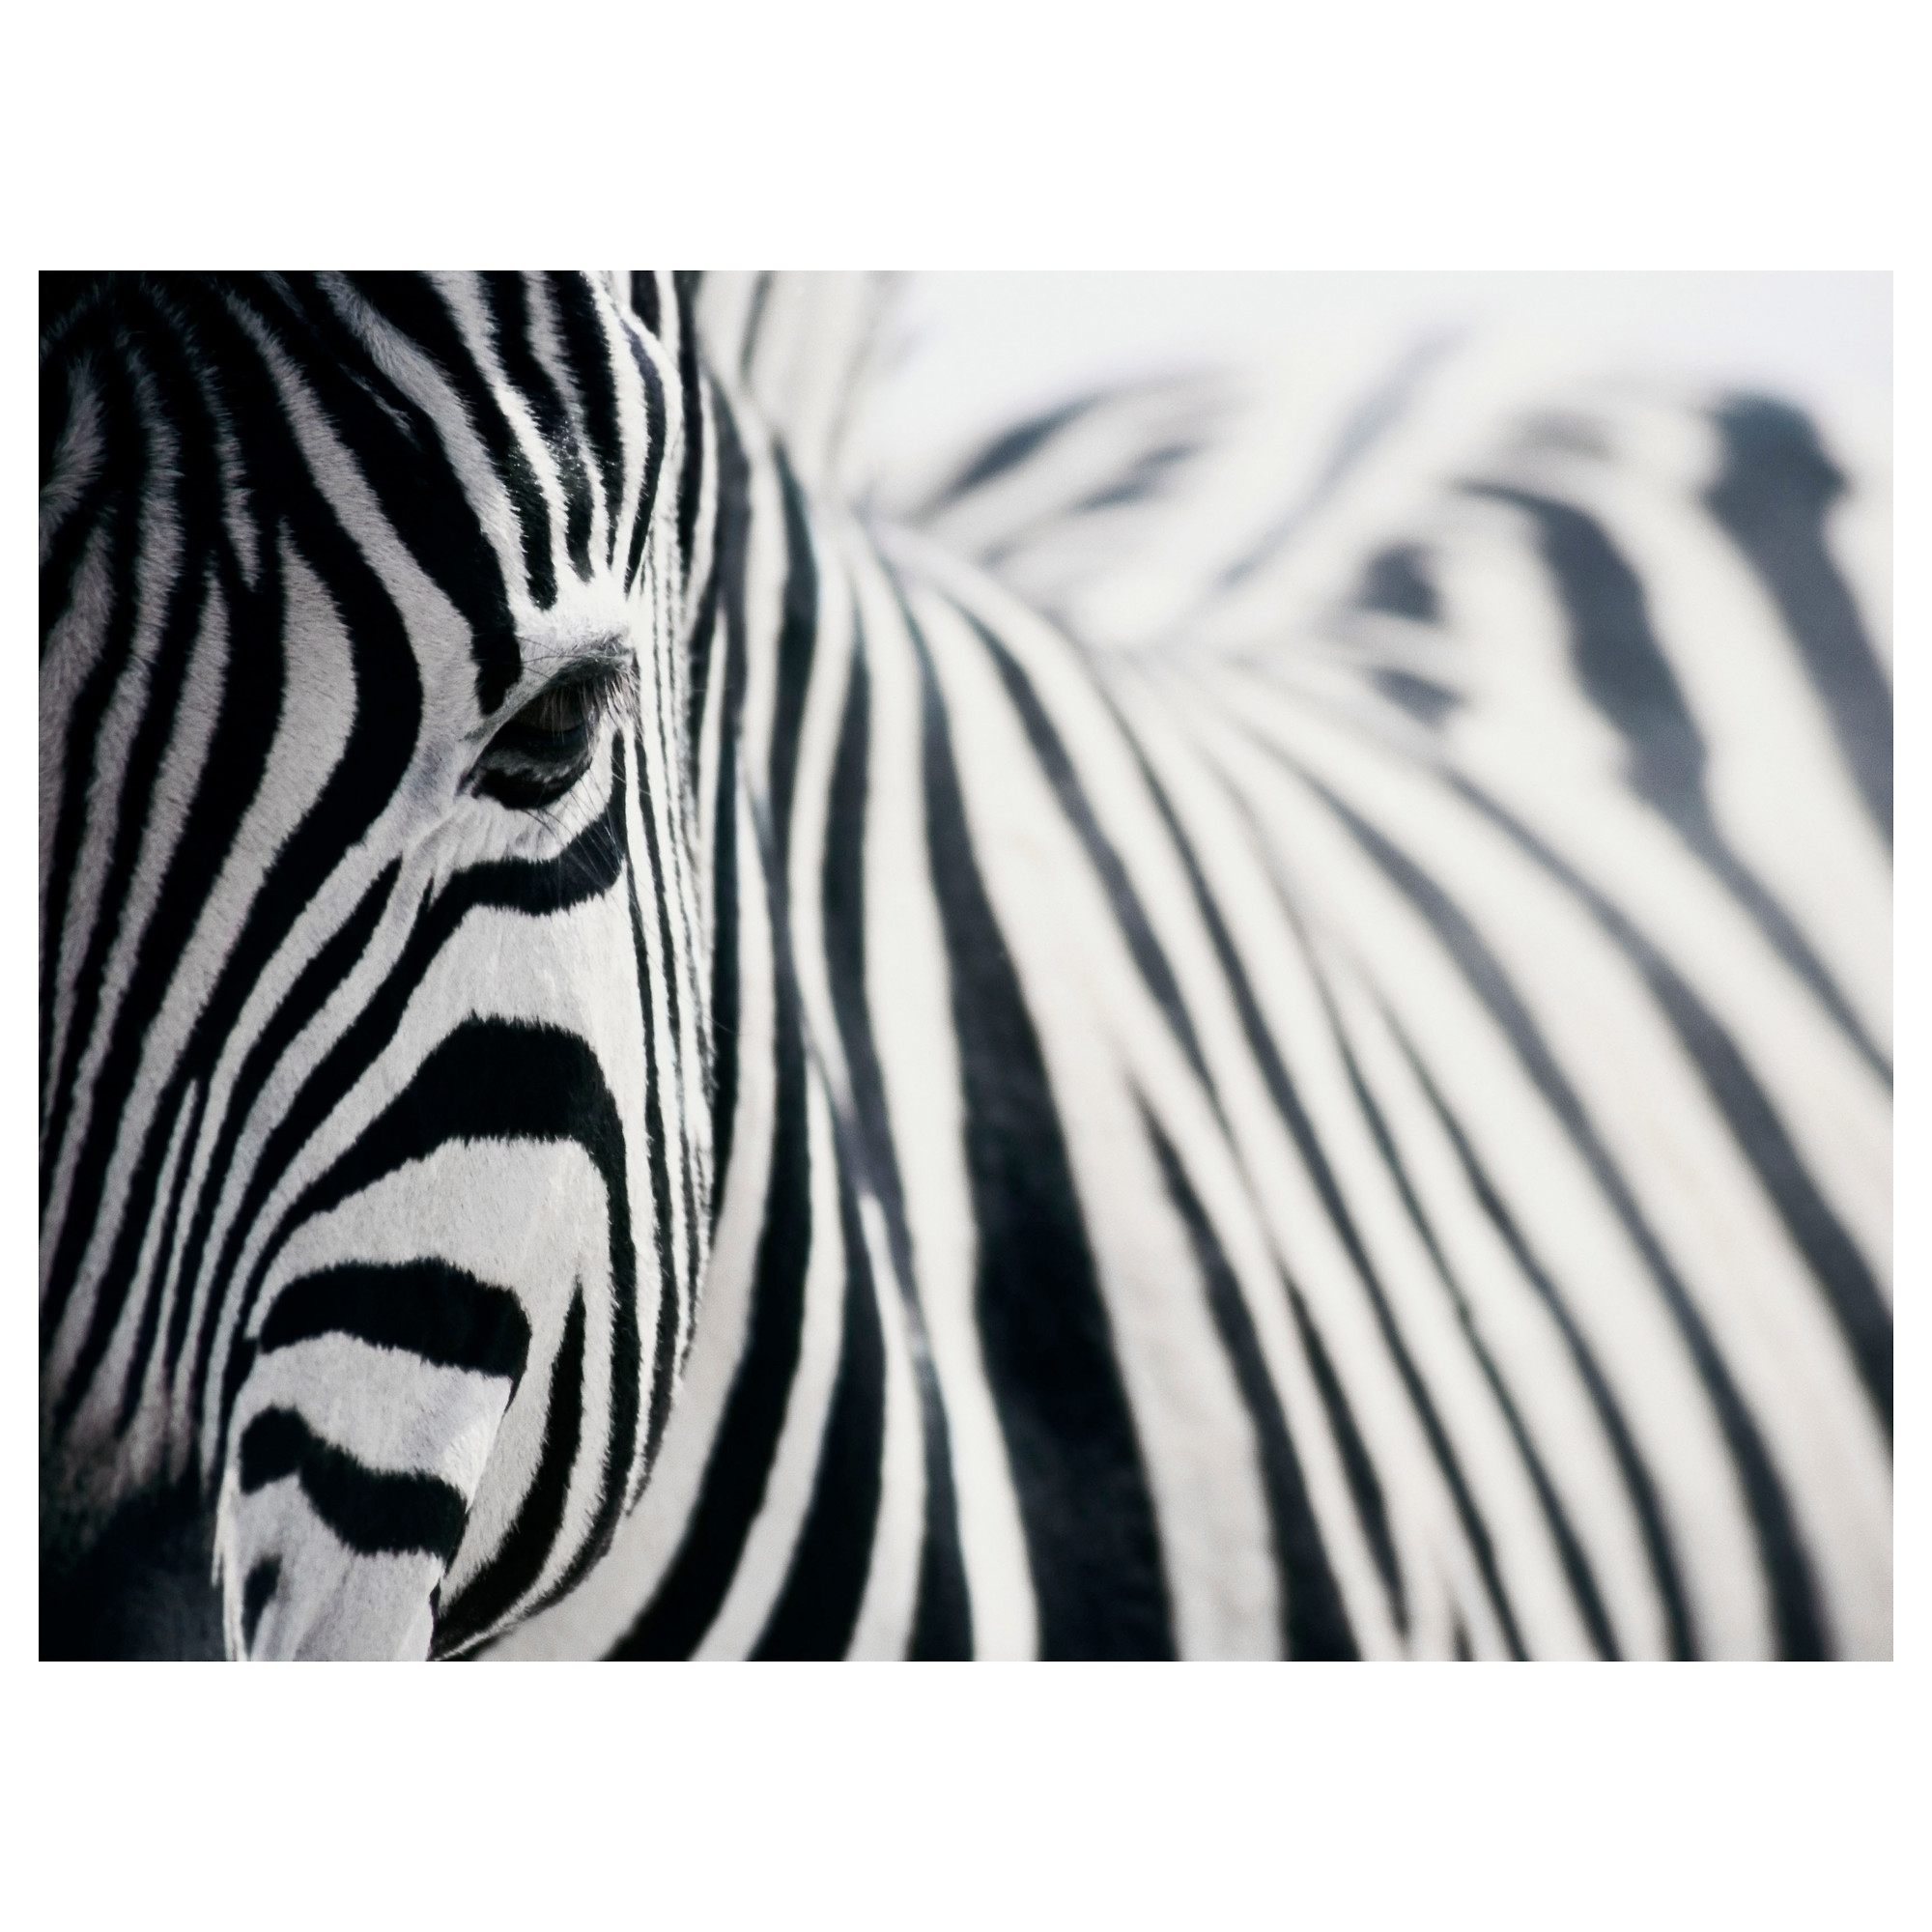 Widely Used Zebra Canvas Wall Art – Culturehoop Intended For Zebra Canvas Wall Art (View 12 of 20)